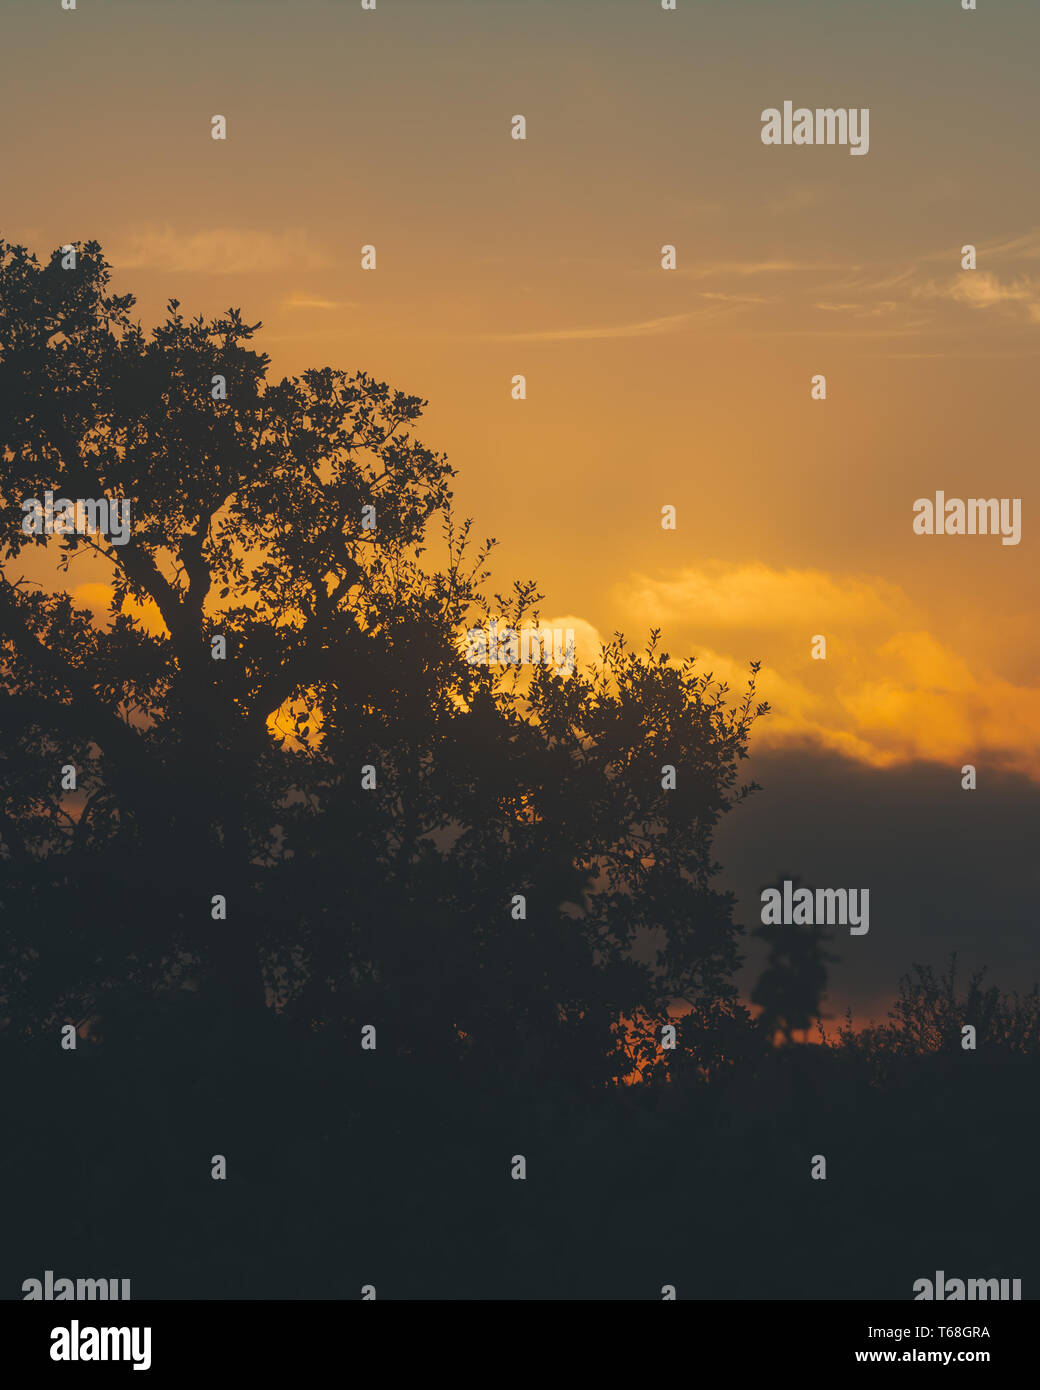 Sunset with clouds and the crown of the cork tree in silhouette - Stock Image